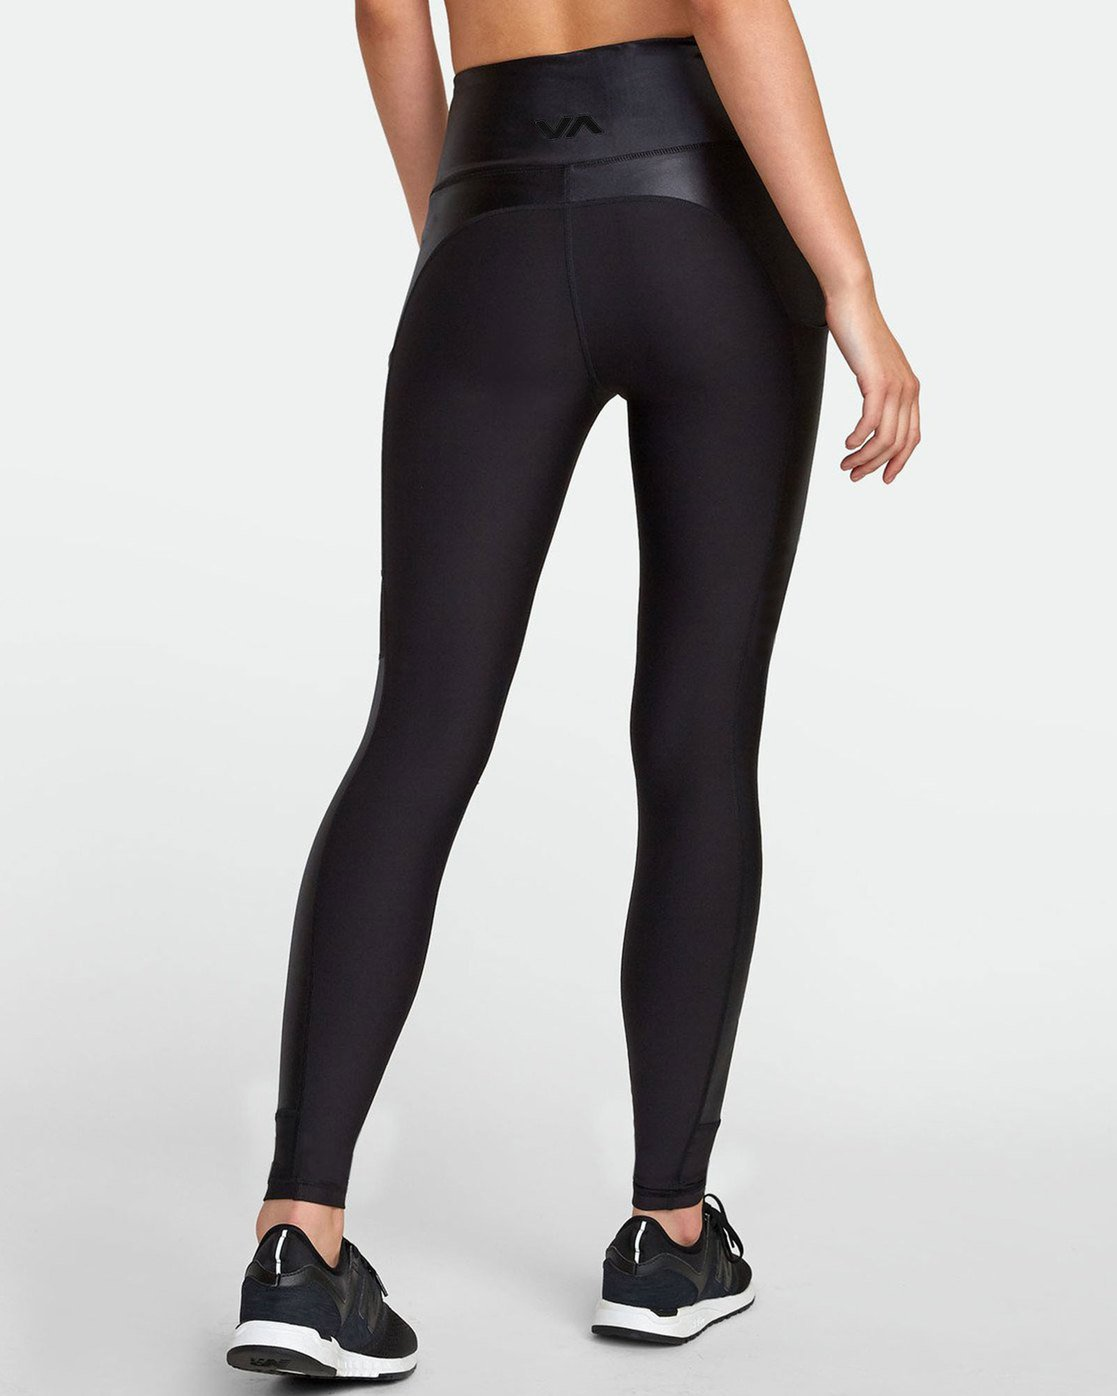 4 MATTE SHINE HIGH RISE LEGGING Black TQ051RMS RVCA